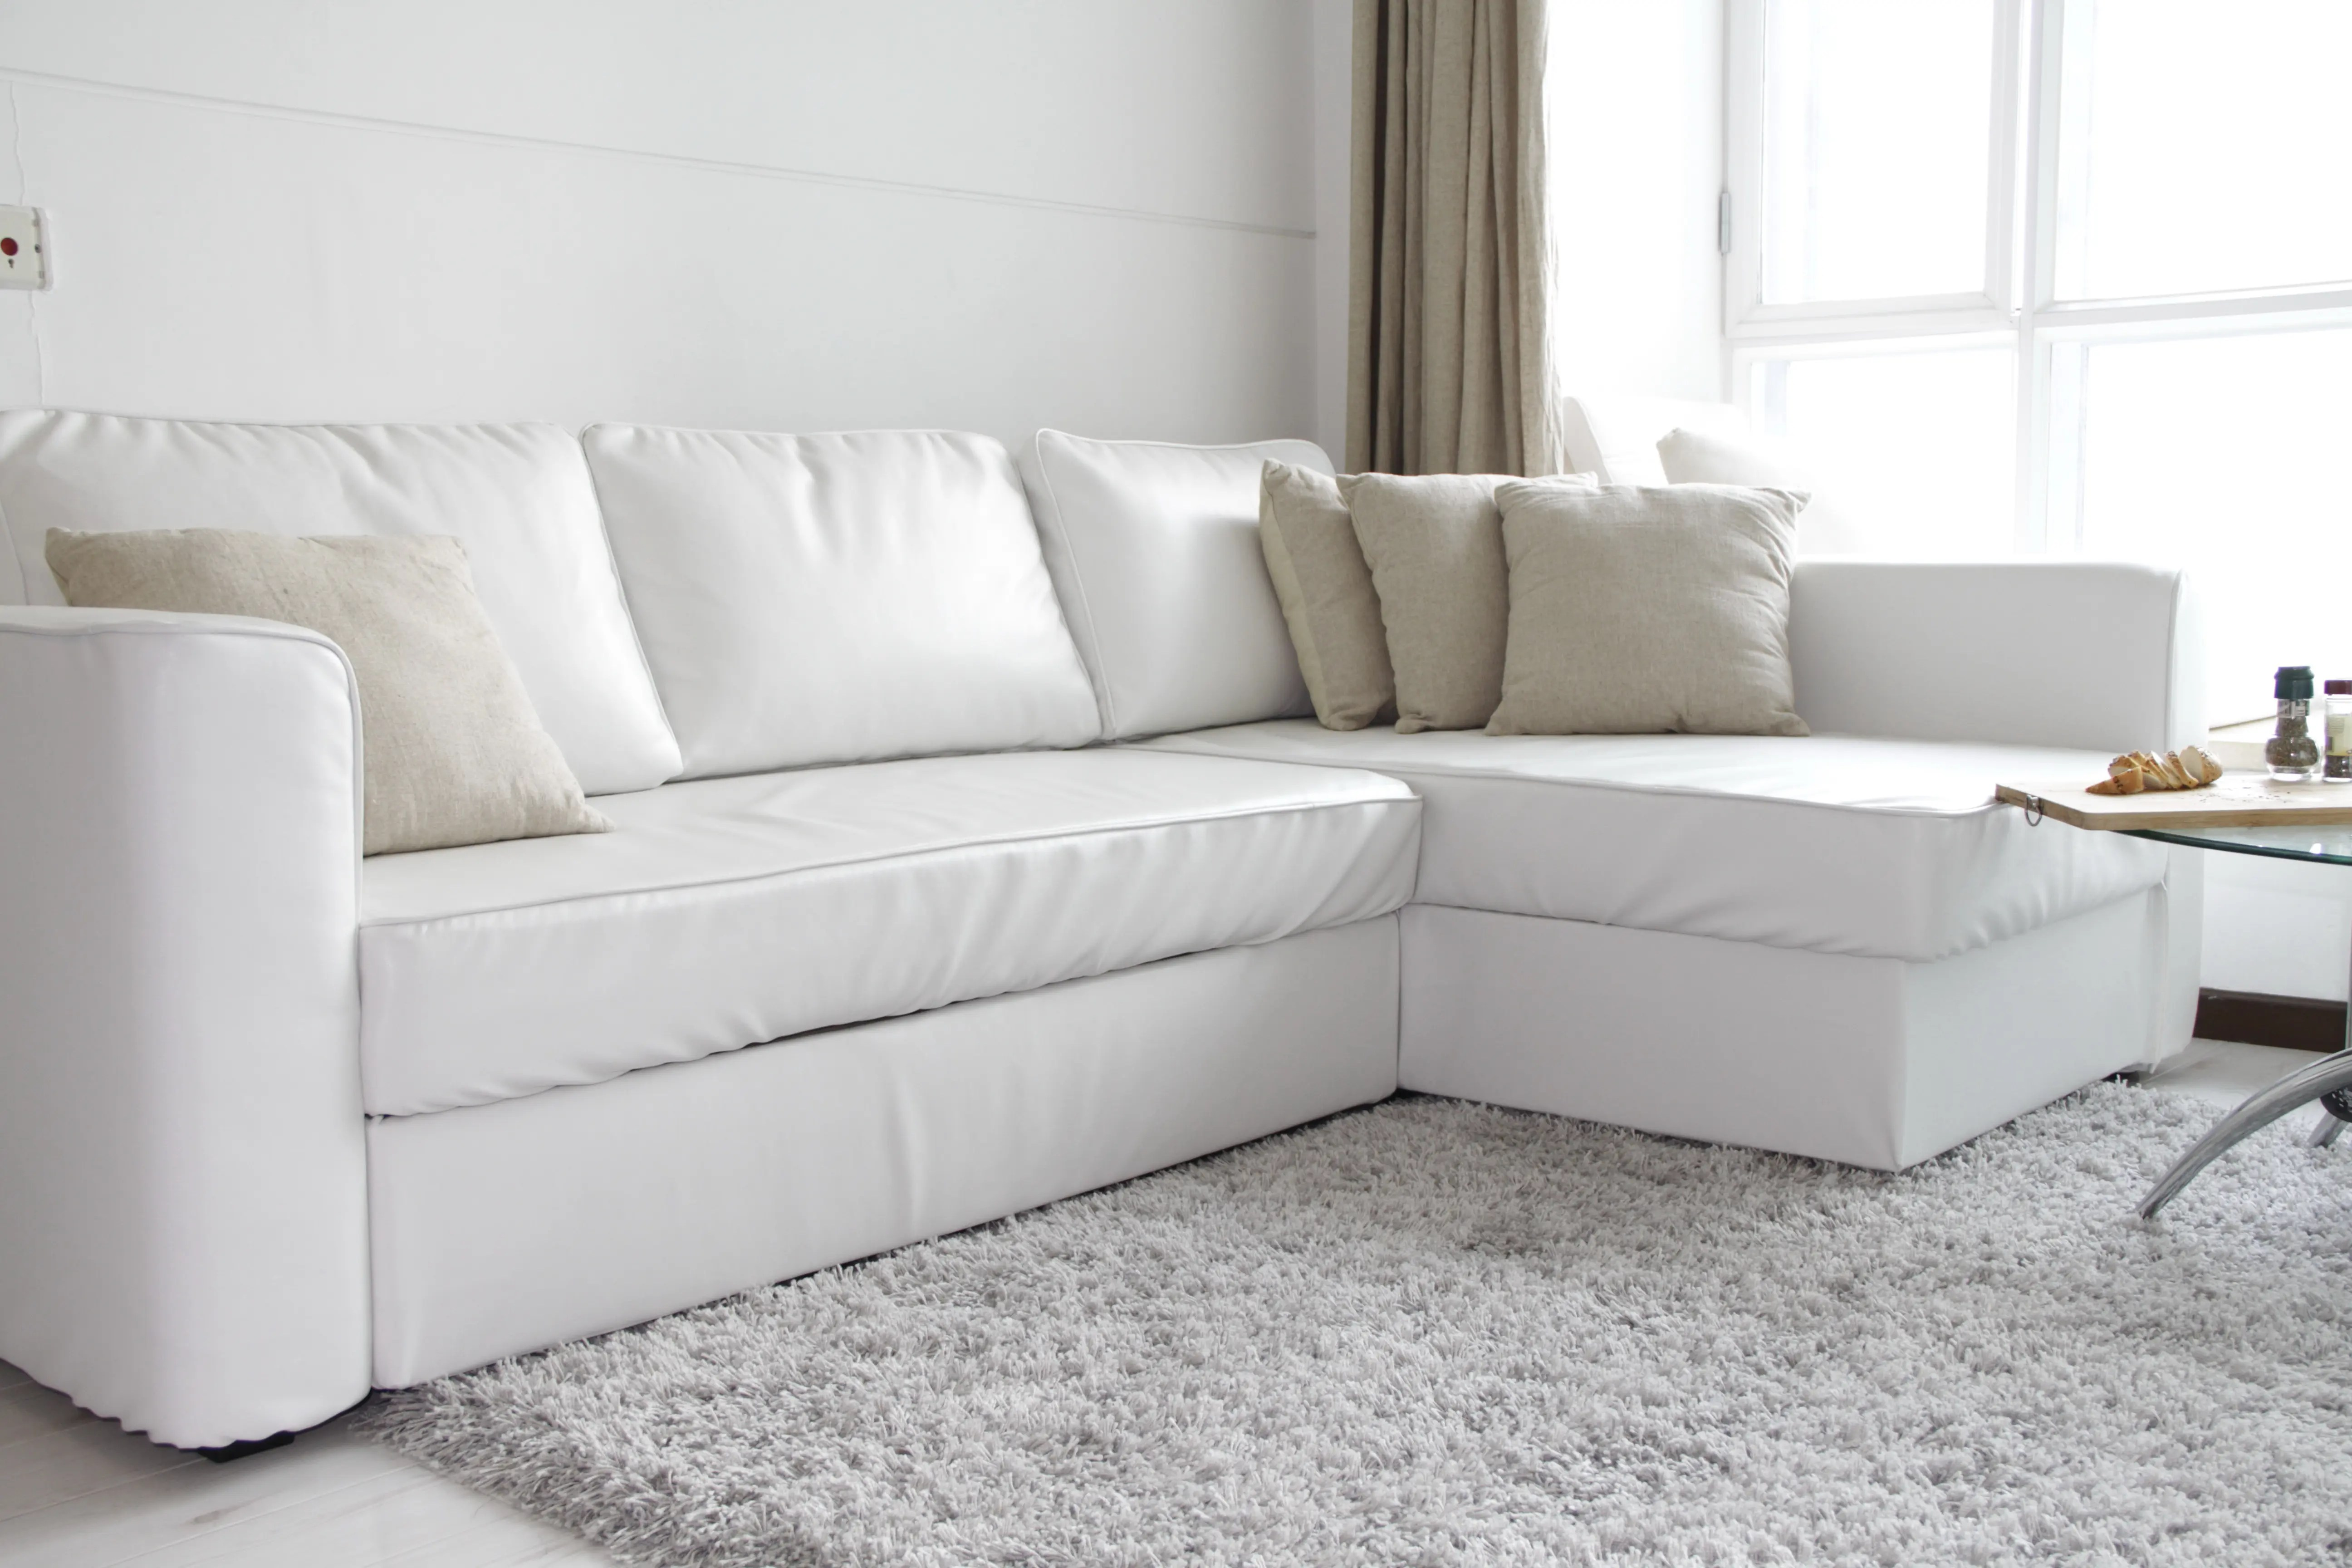 ikea sofa coverings best way to clean cushions covers latest kivik chaise lounge